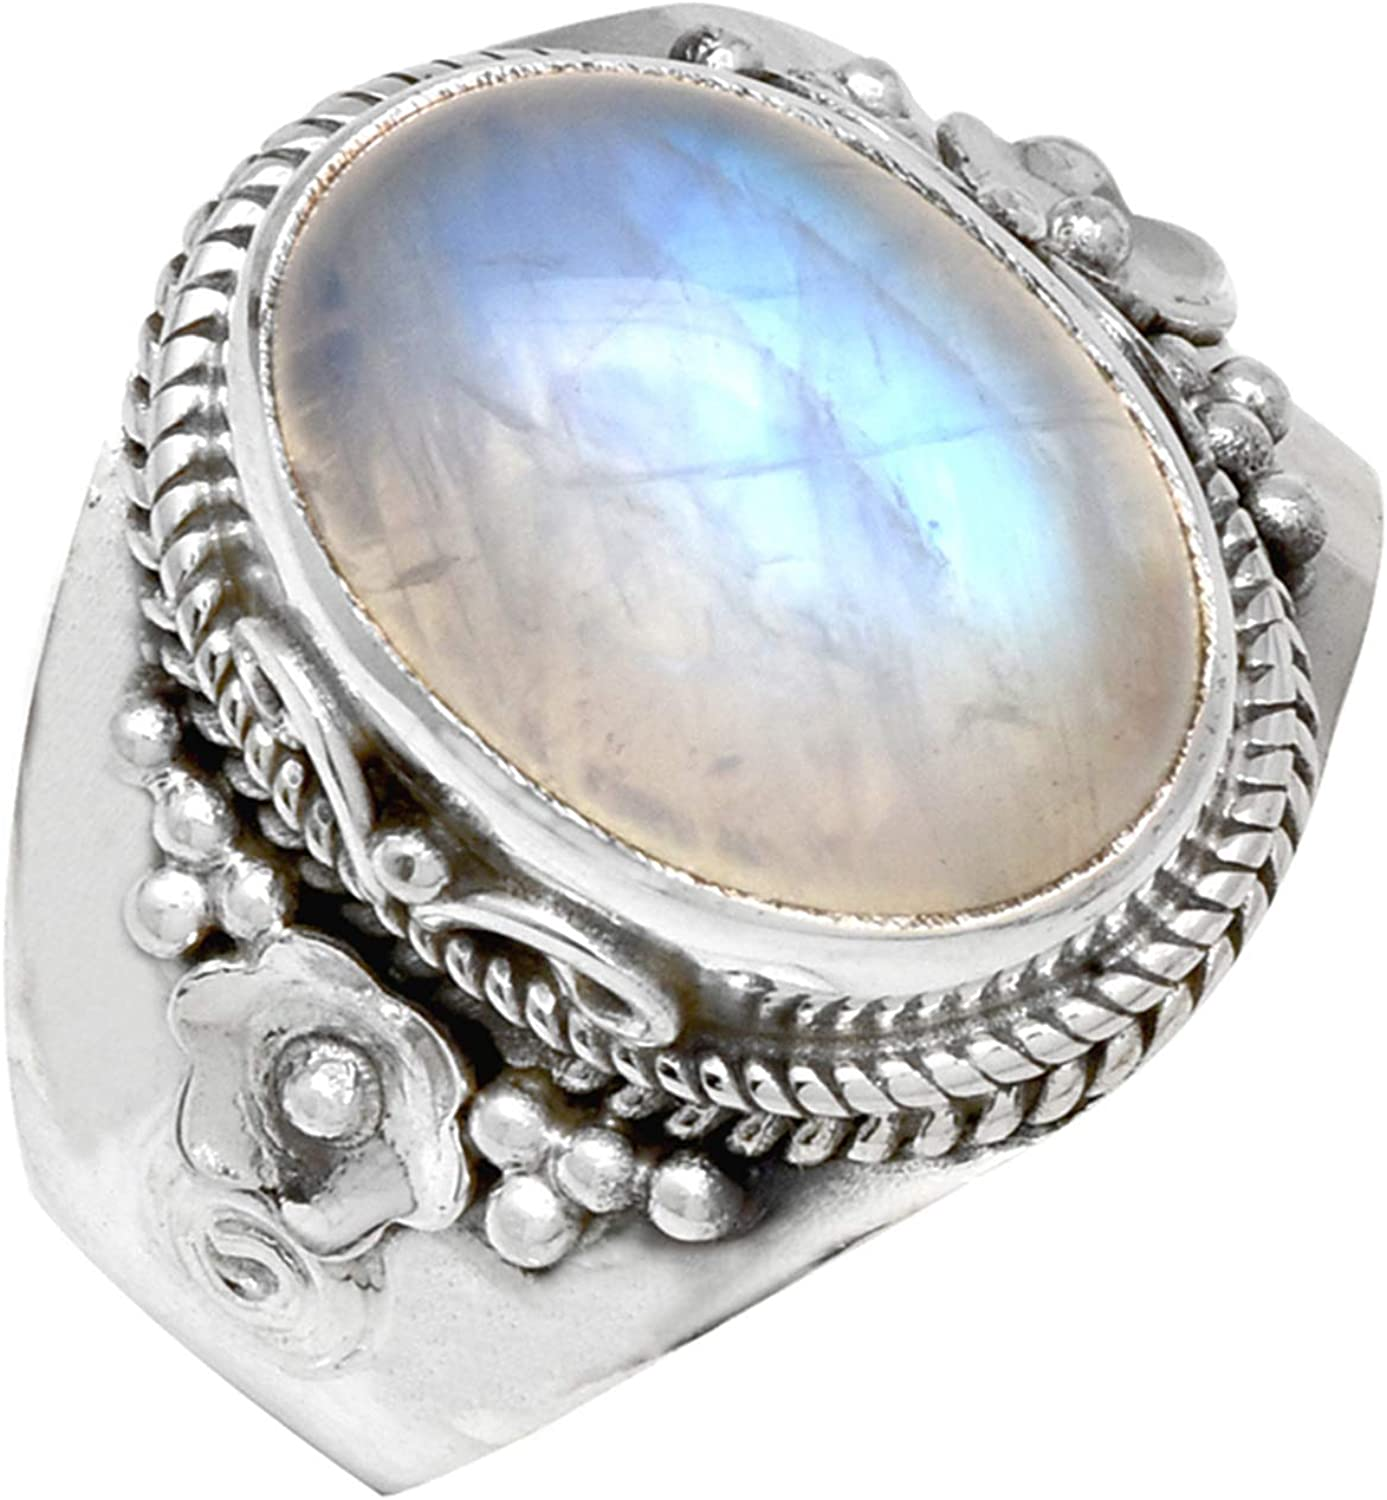 YoTreasure Solid 925 Sterling Silver Rainbow Moonstone Ring